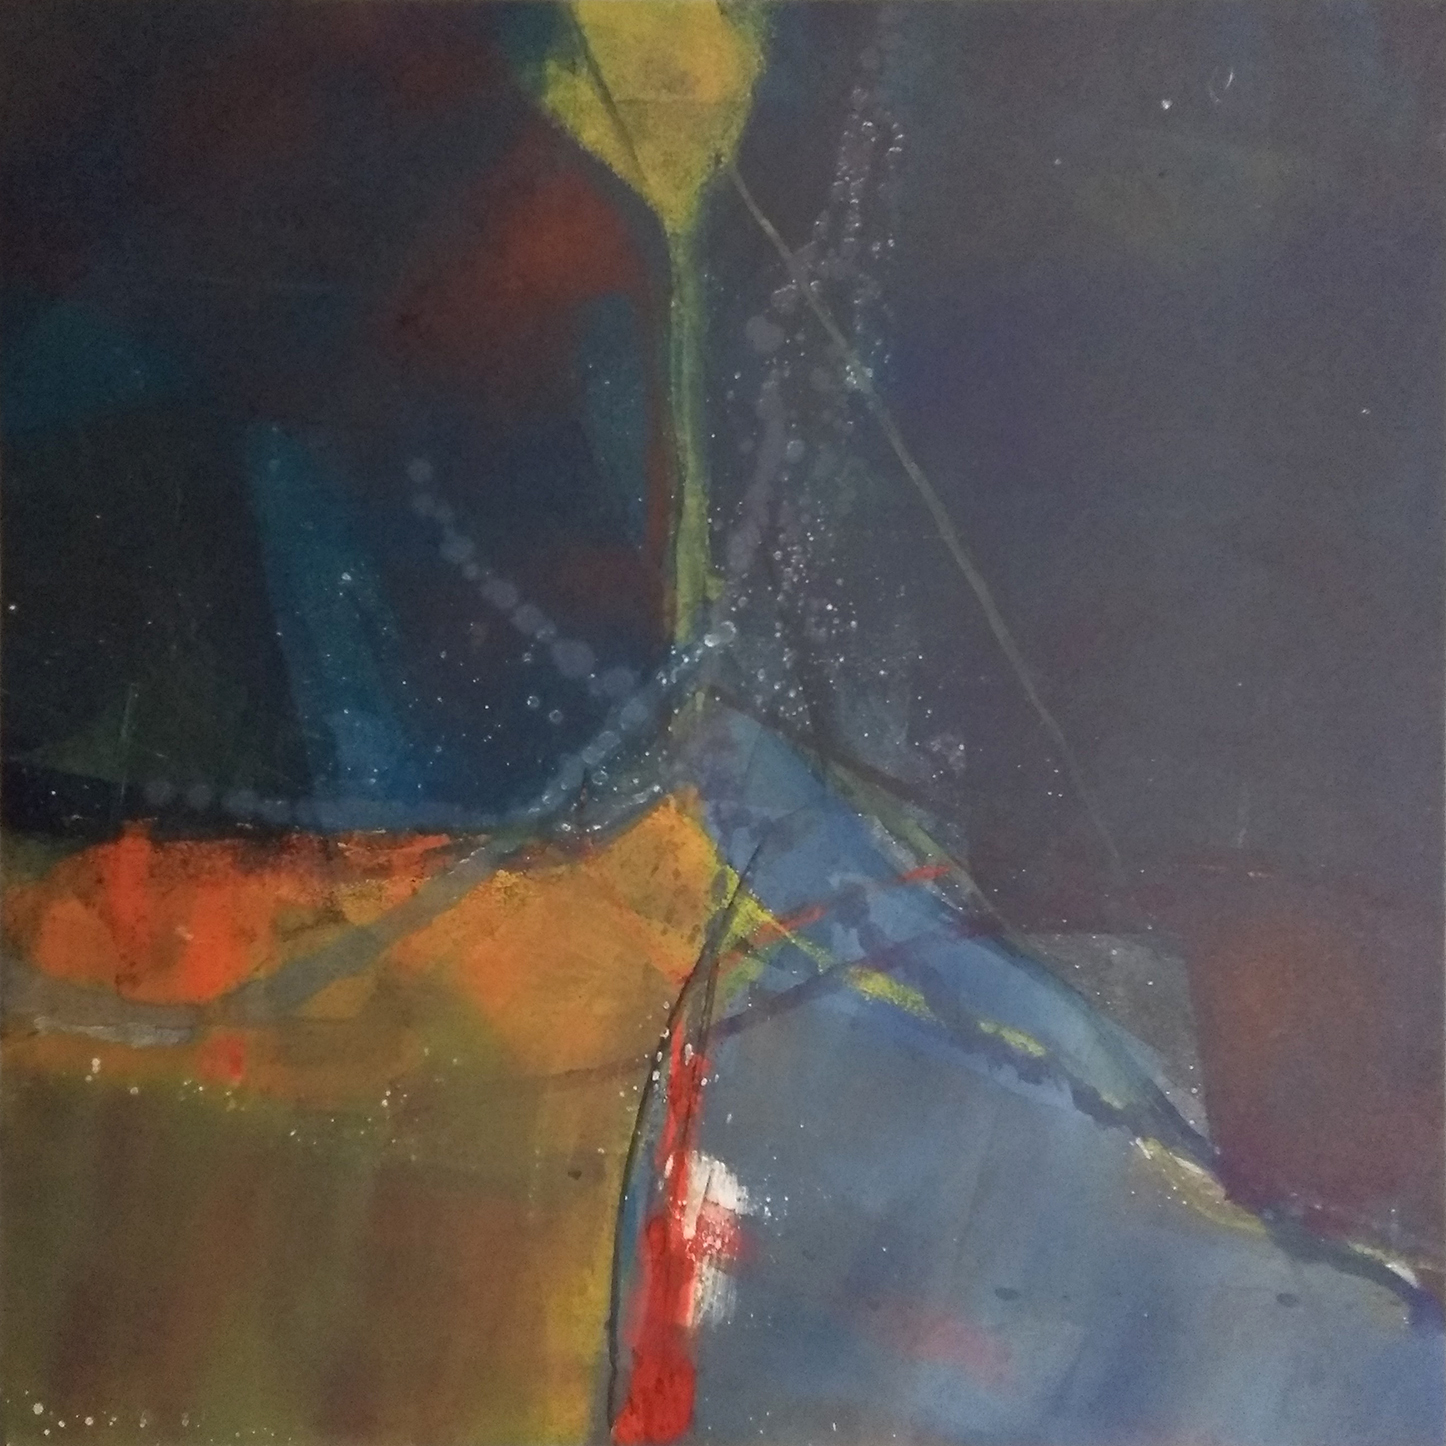 50 - oil based ink monoprint, 51 x 51 cm